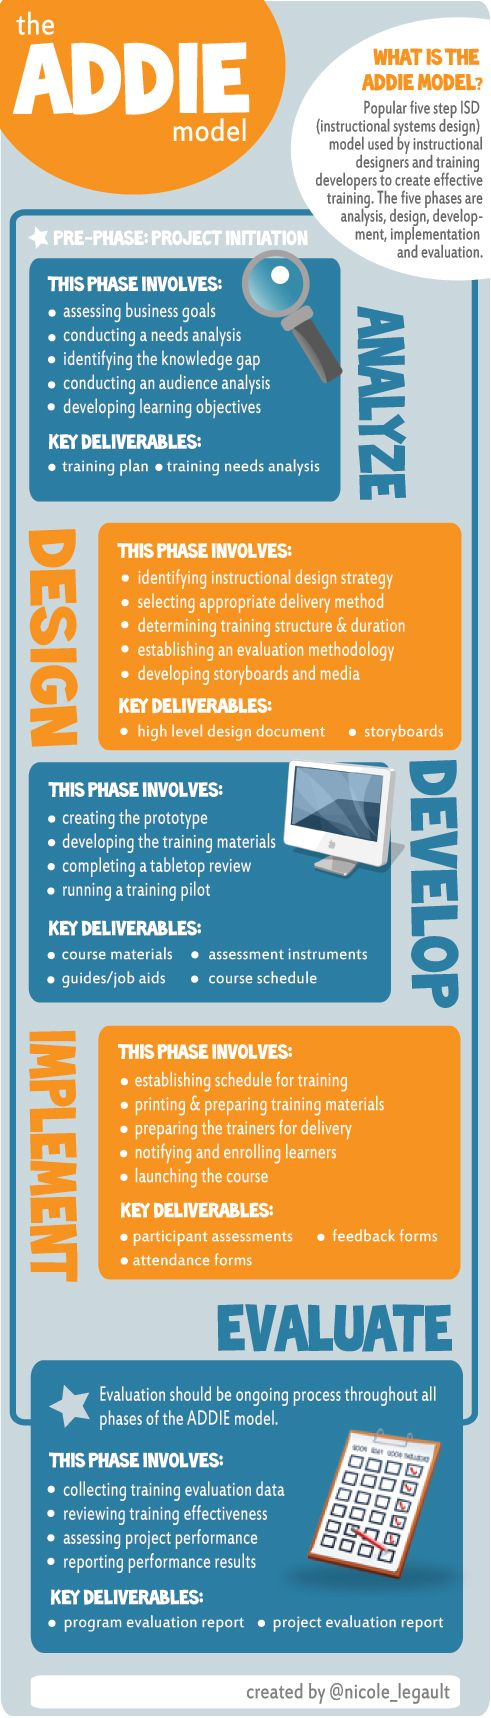 the addie model template diagram with examples [ 491 x 1718 Pixel ]